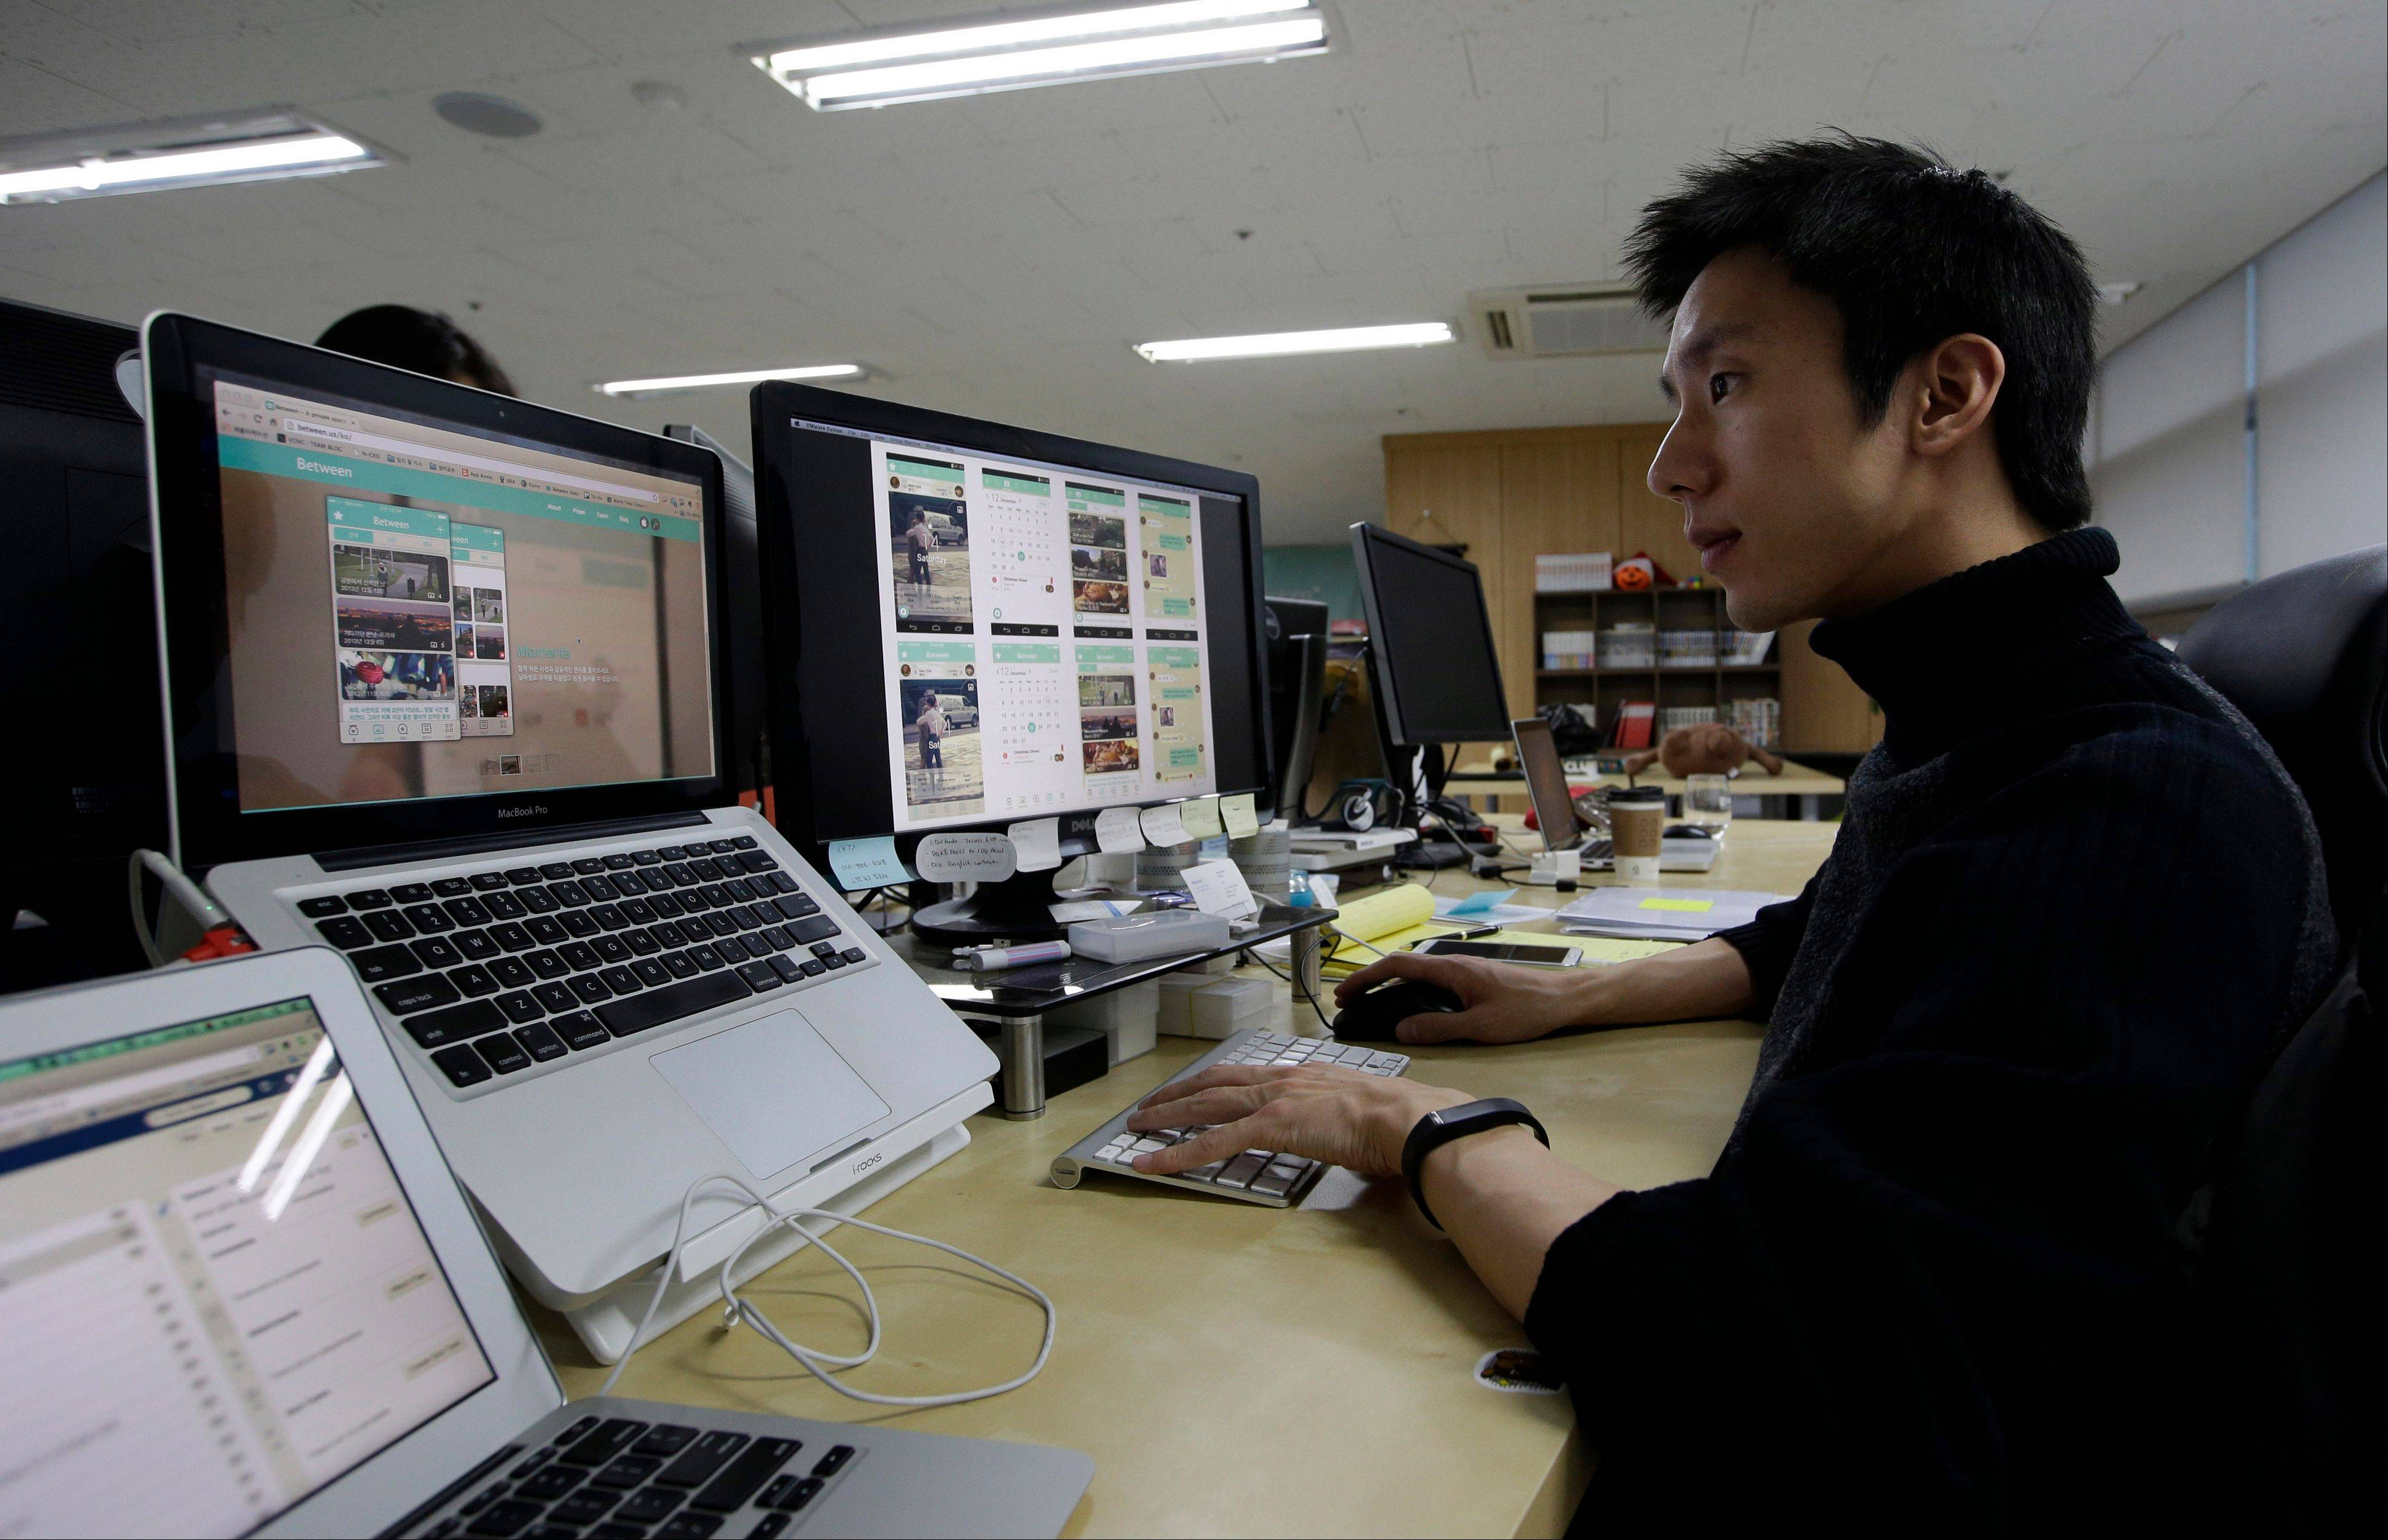 Value Creators & Company CEO Park Jaeuk shows his company's app Between on a screen at his office in Seoul, South Korea. Created by the Seoul-based startup, Between hit 5 million downloads in two years. About two-thirds of the users are in South Korea with their average age in the mid-20s. Between has attracted more than half a million users in Japan and is expanding in Thailand and Singapore. Hundreds of thousands of Chinese and American couples have also joined.